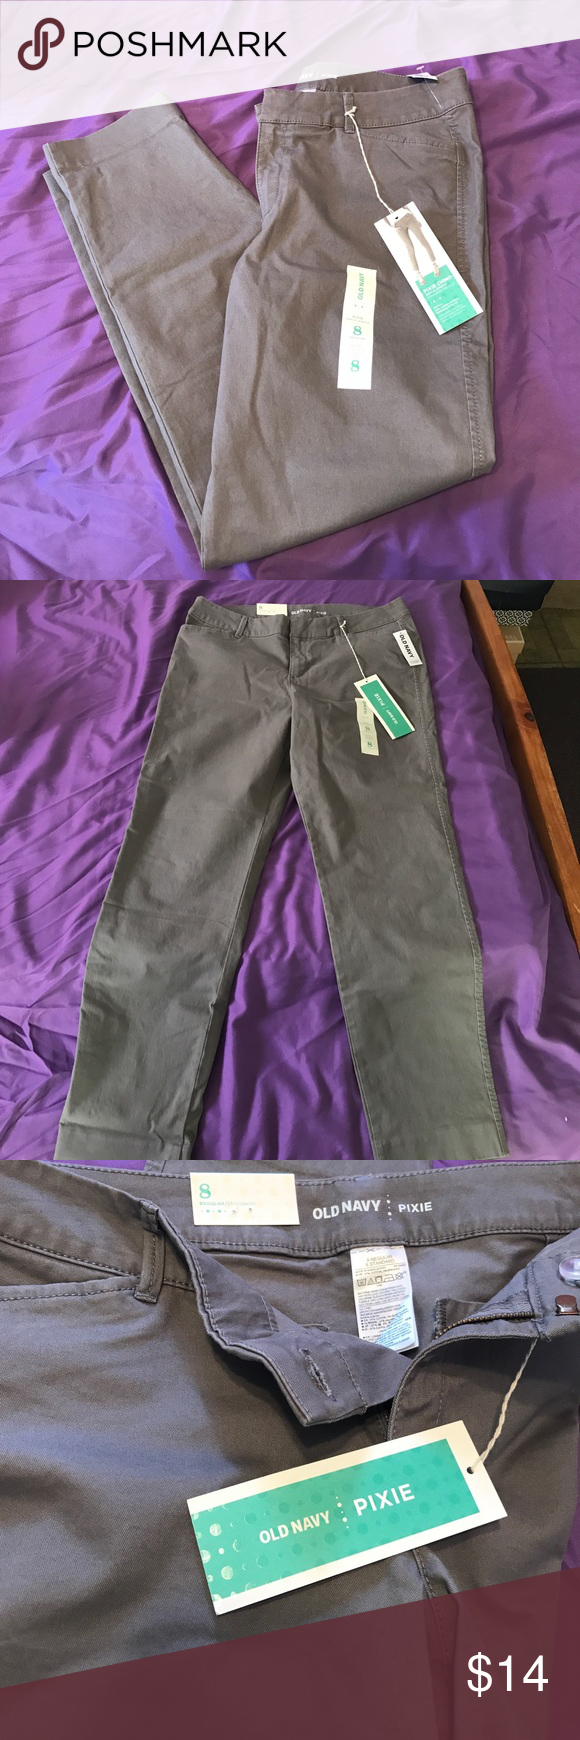 Old Navy Pixie Pants Old Navy Pixie Chino ankle length regular size 8 - never been worn! Still have the tags on them! Old Navy Pants Ankle & Cropped